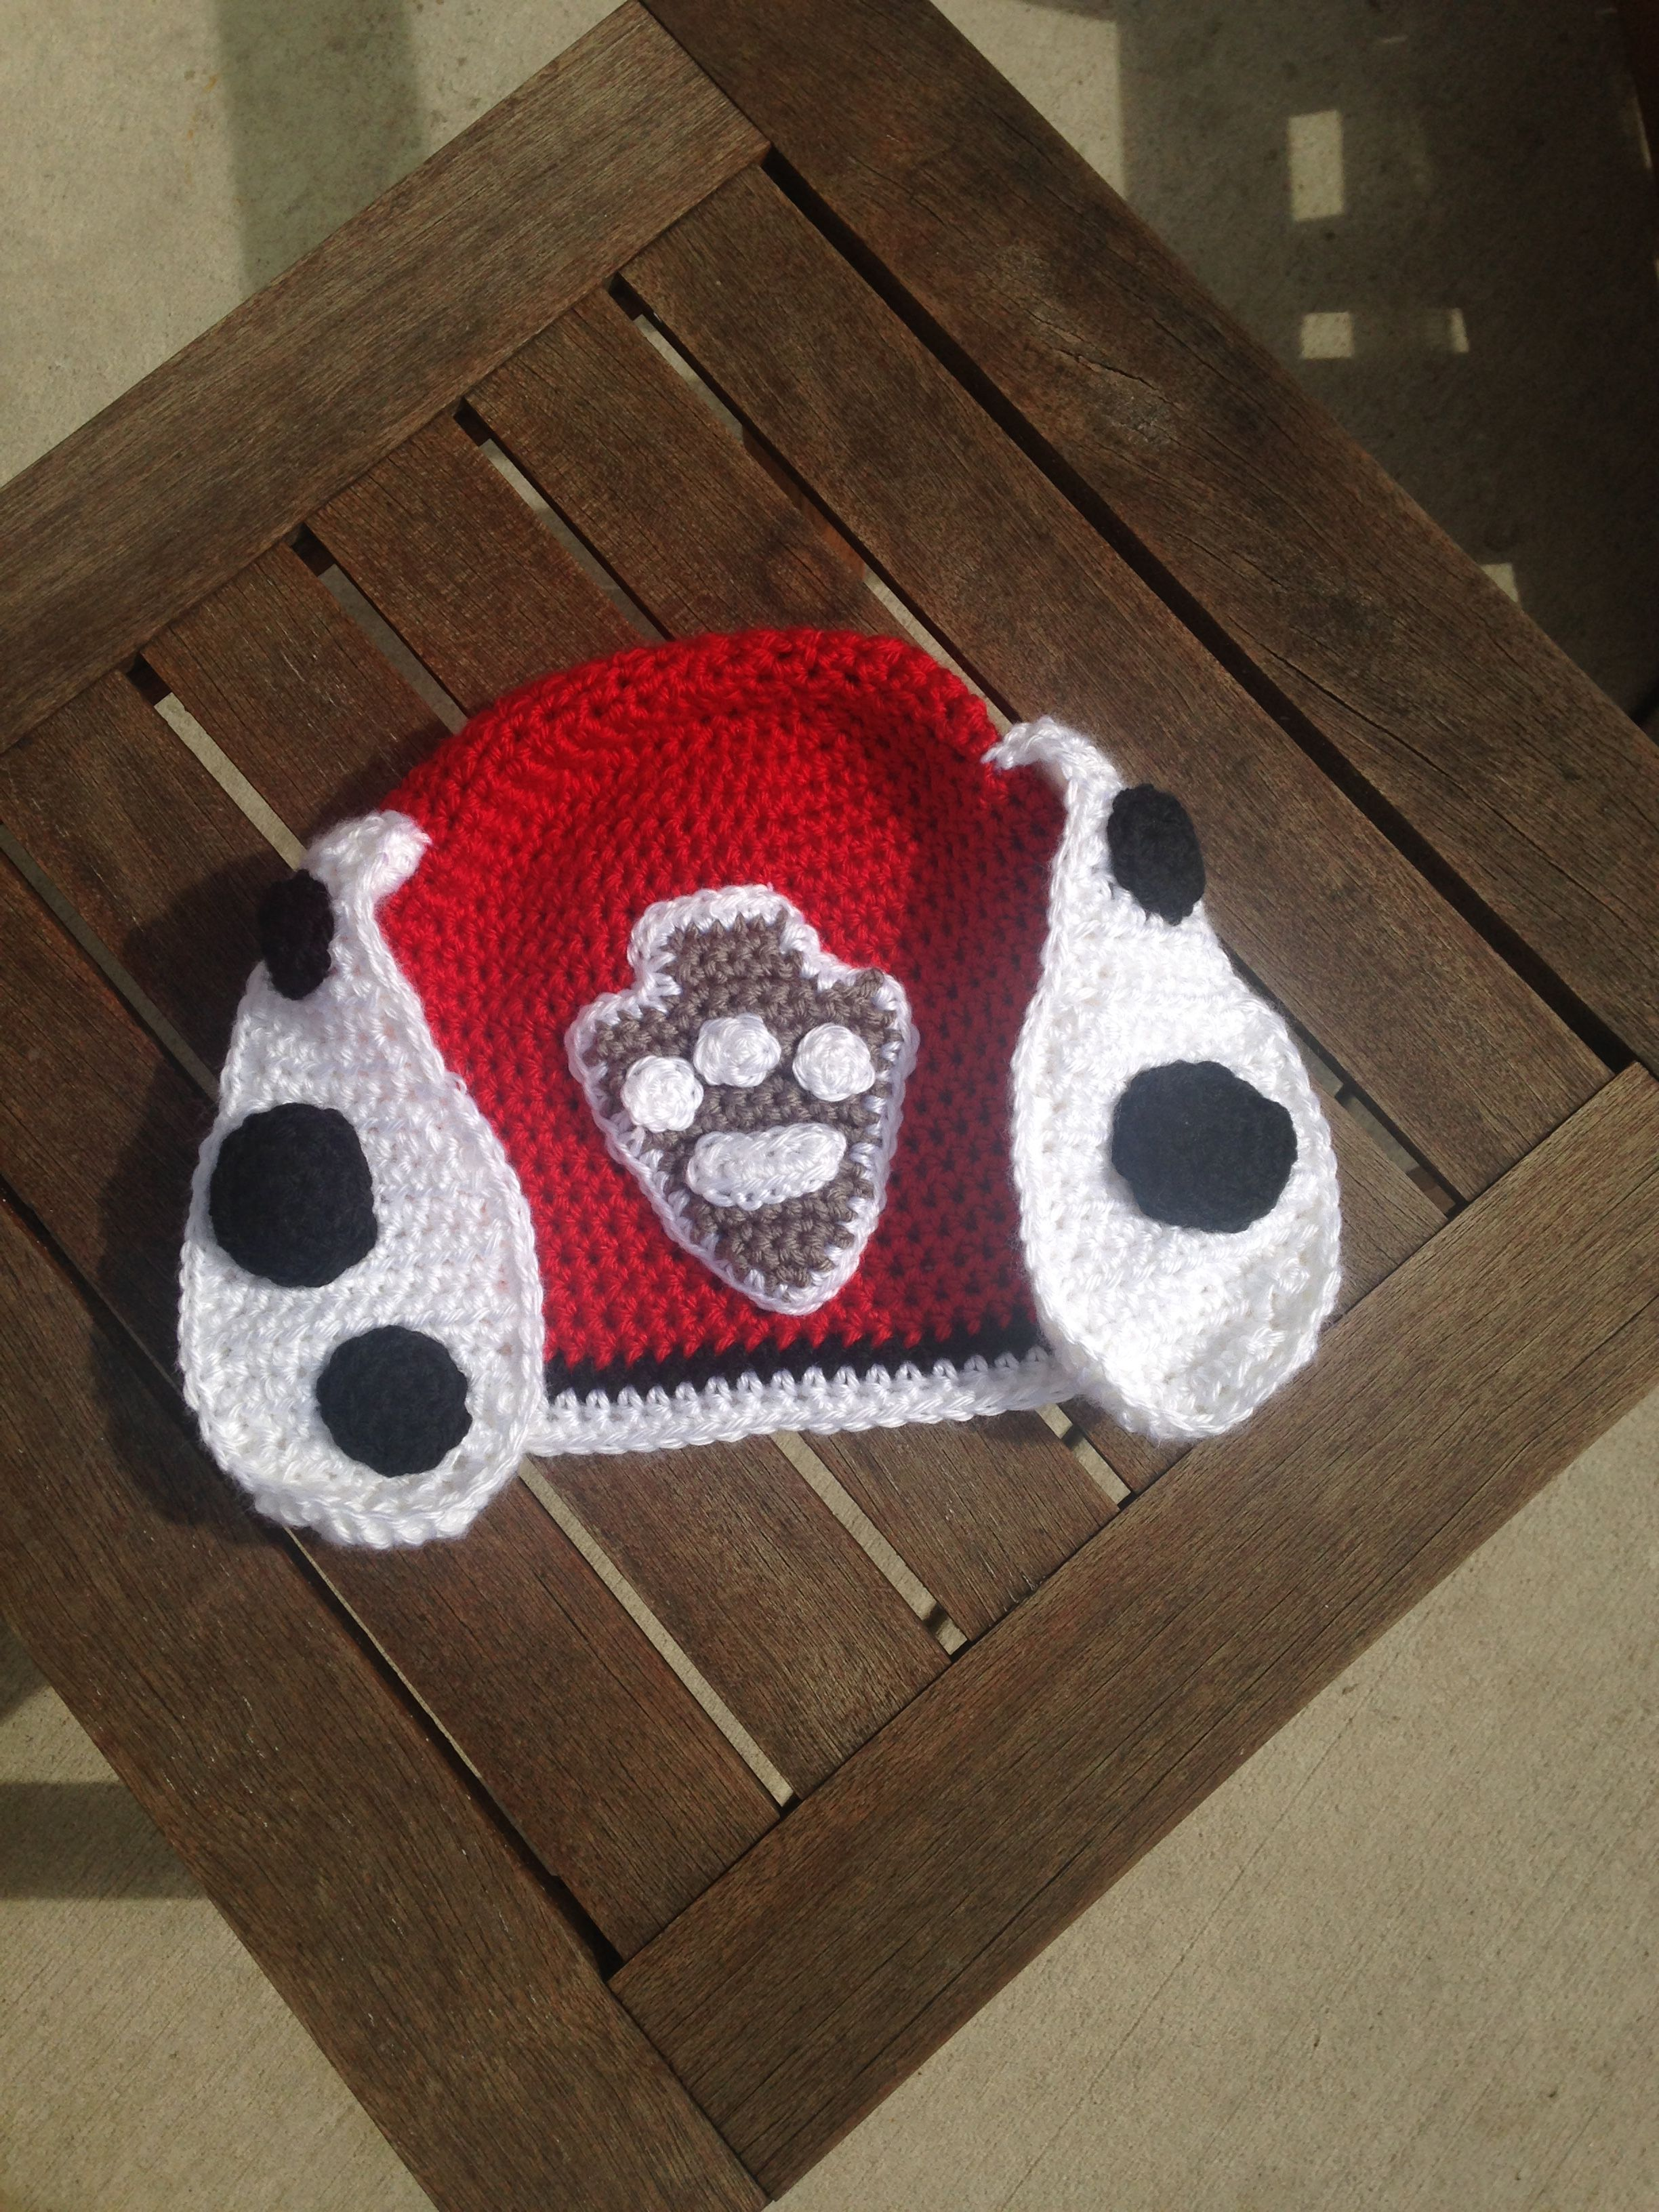 Marshall from Paw Patrol Crocheted Hat Crochet | My Crochet | Pinterest